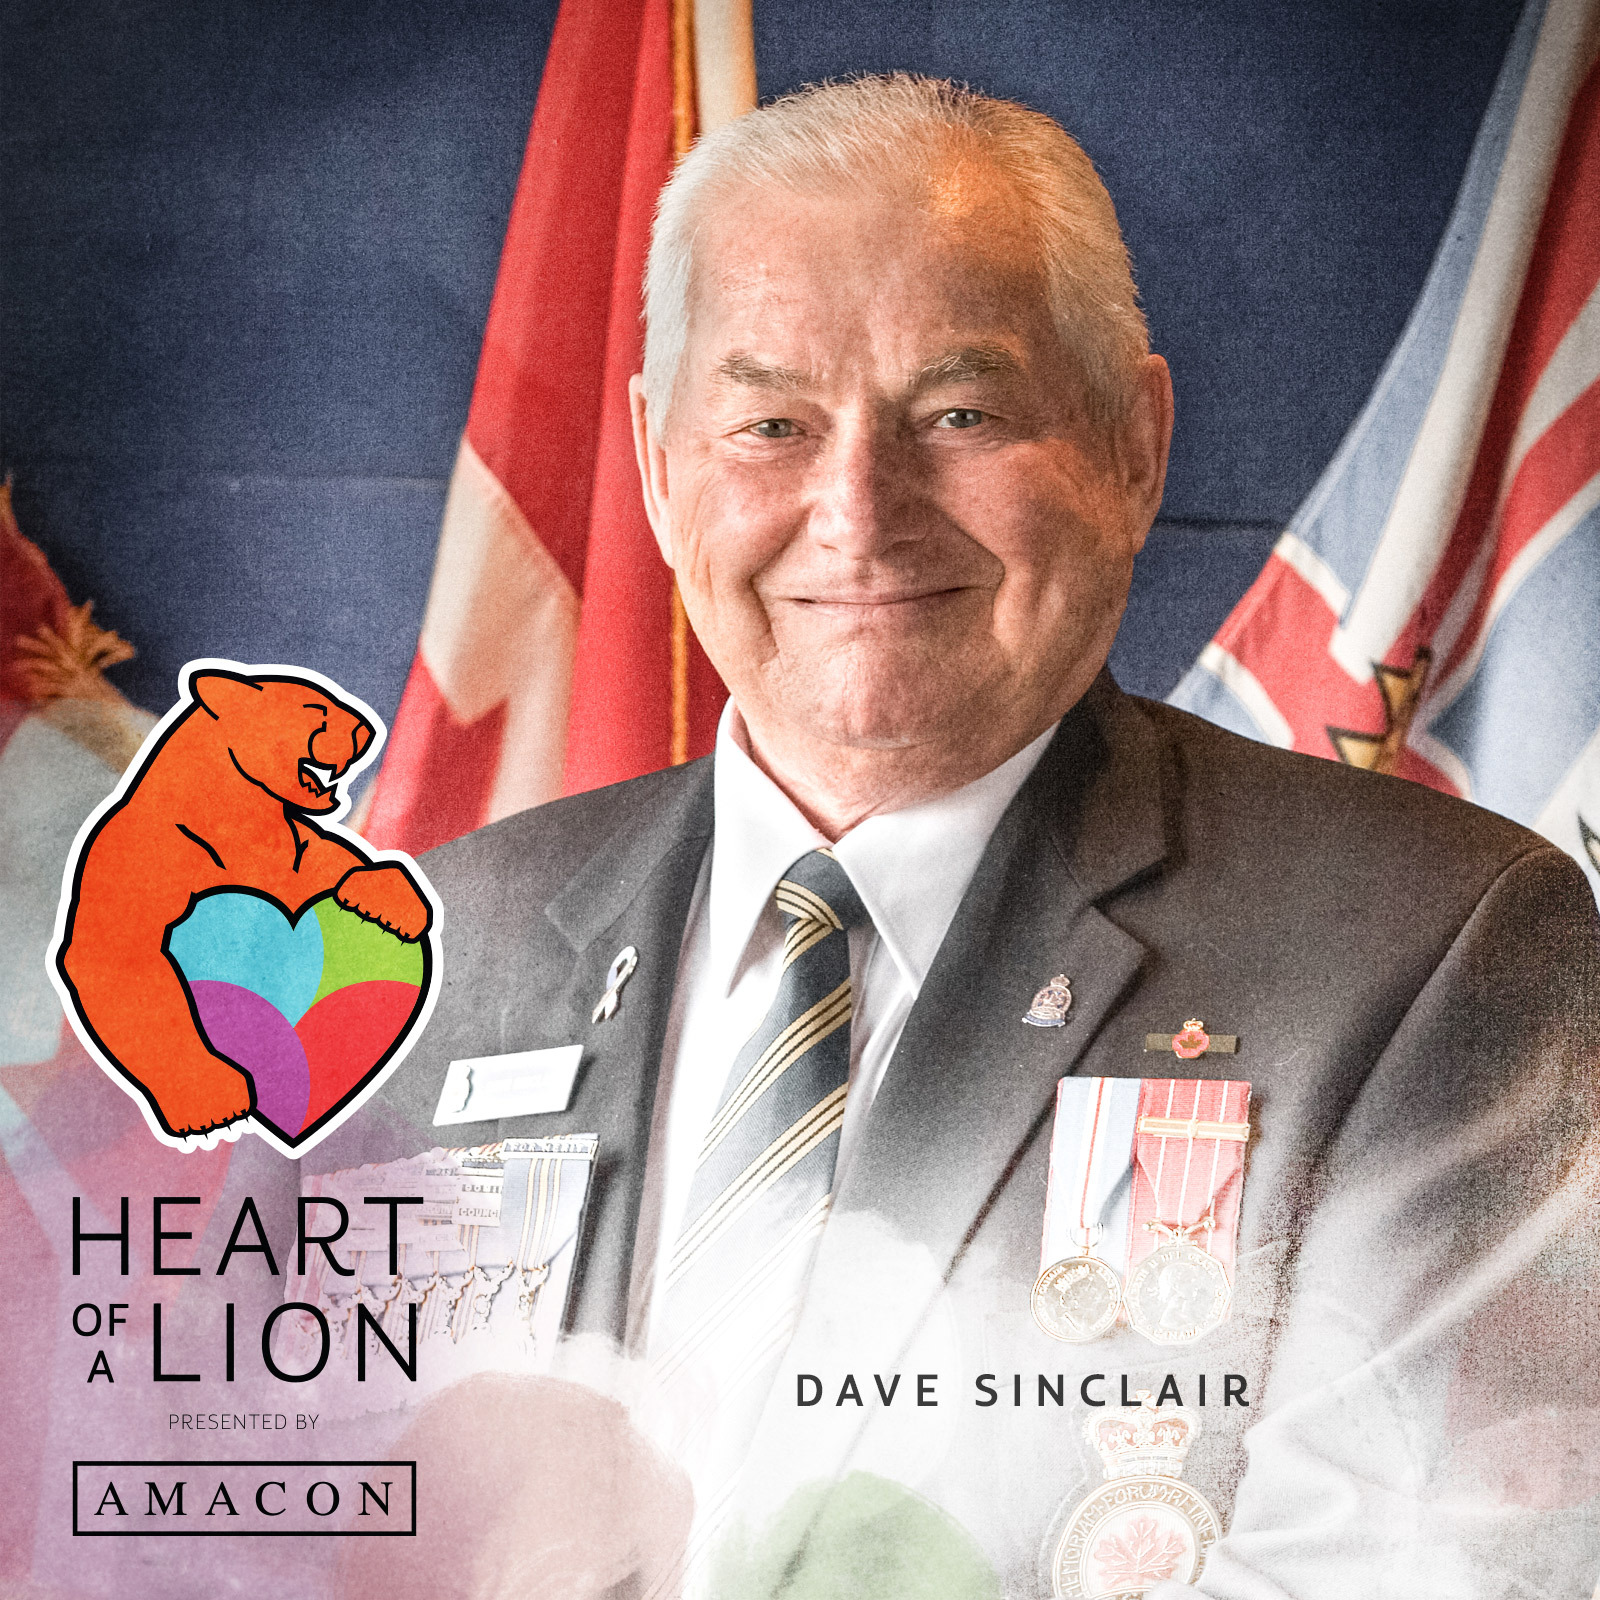 David Sinclair - Heart of a Lion Heroes Award Recipient